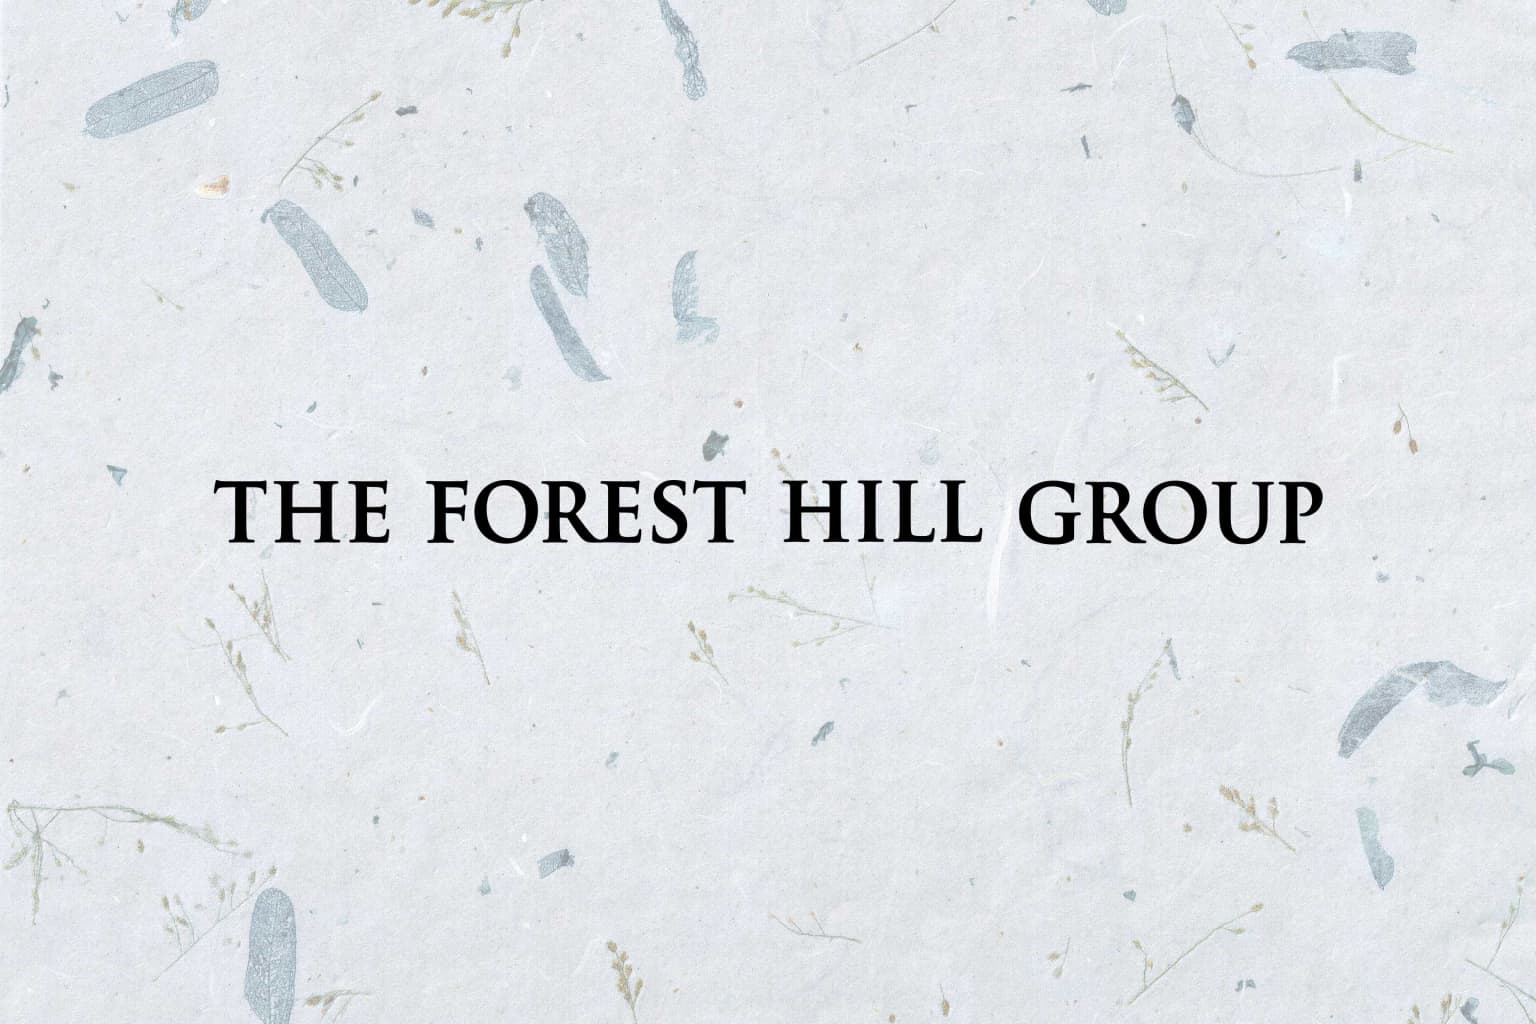 The Fores Hill Group Rebrand